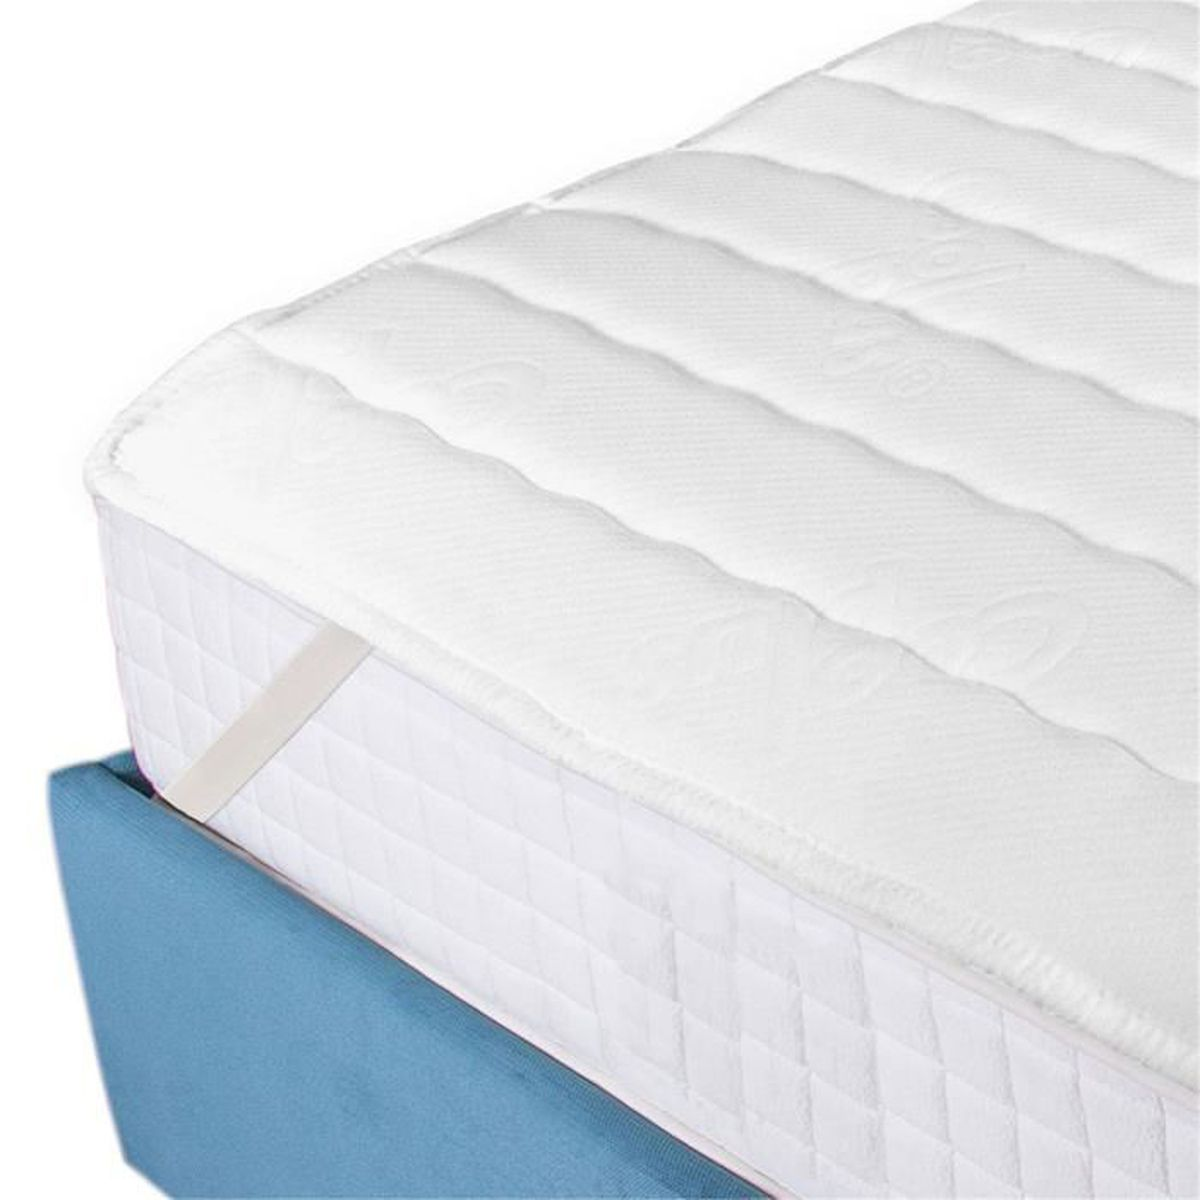 glycine cool plus surmatelas thermorégulant alinea 3cm (140x200cm